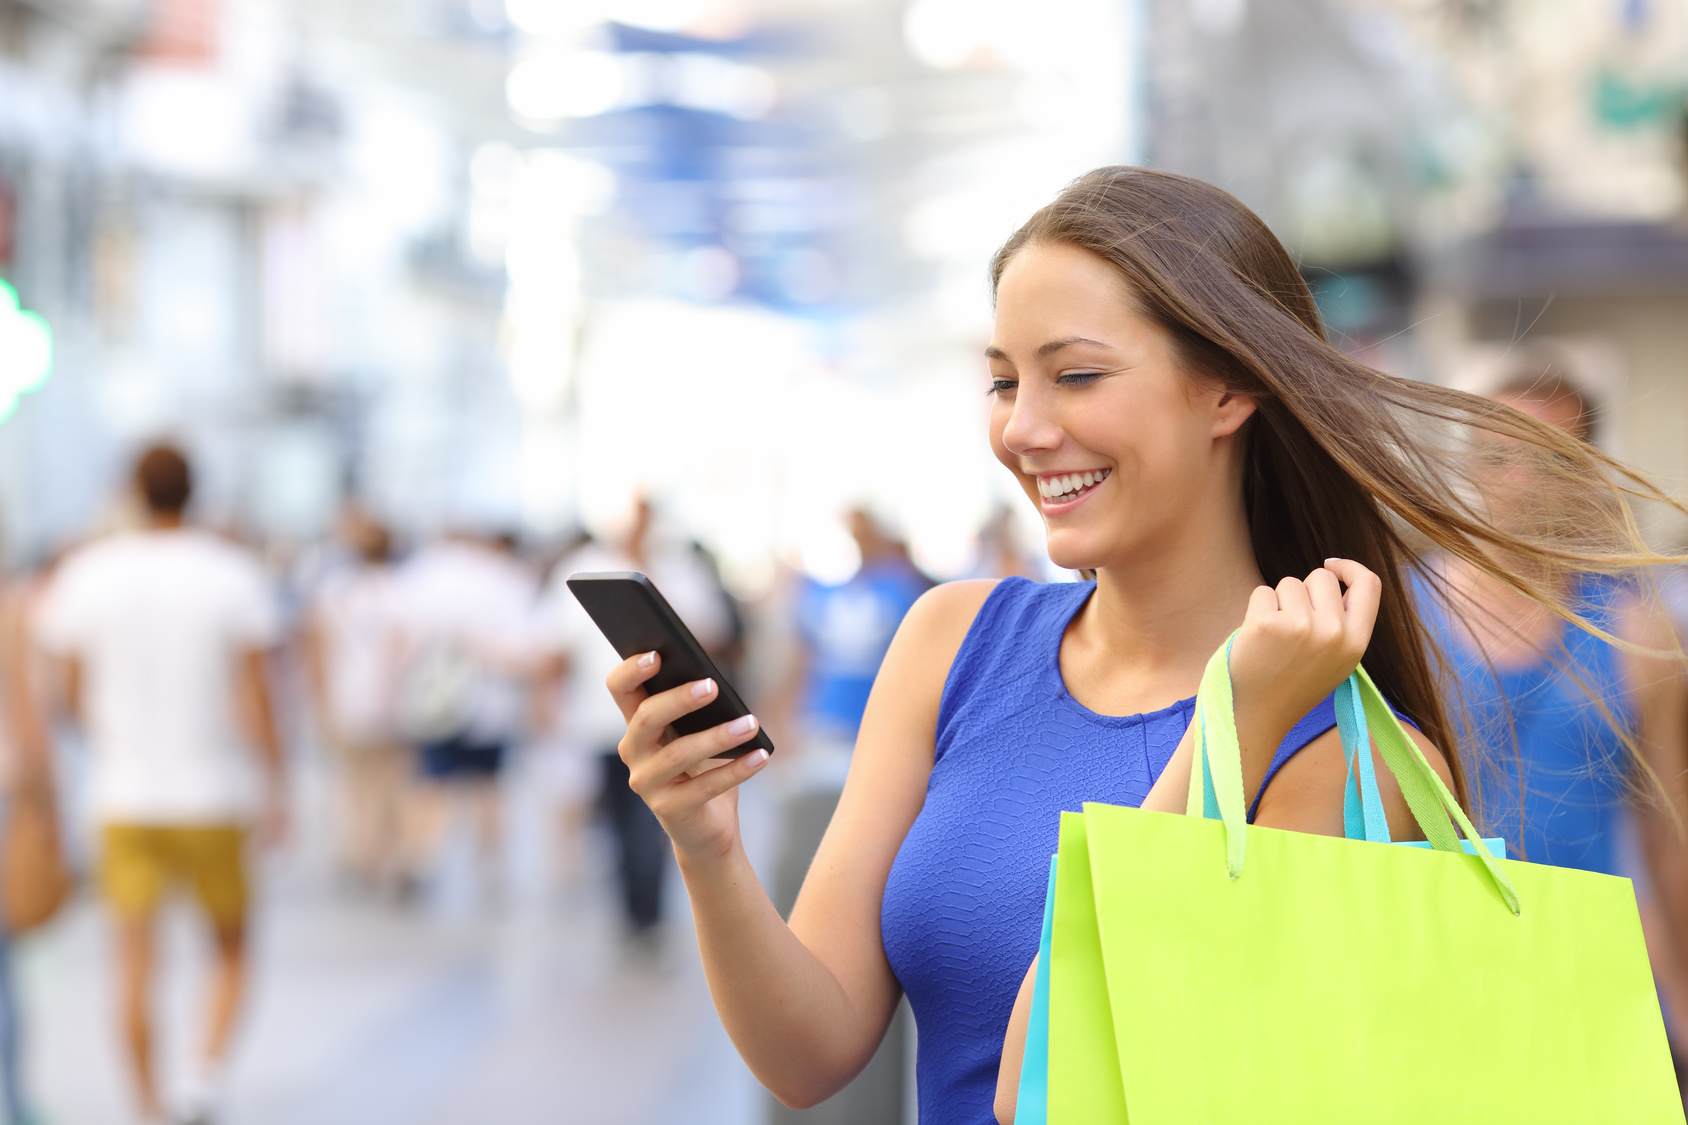 Shopper woman shopping with a smartphone in a commercial street